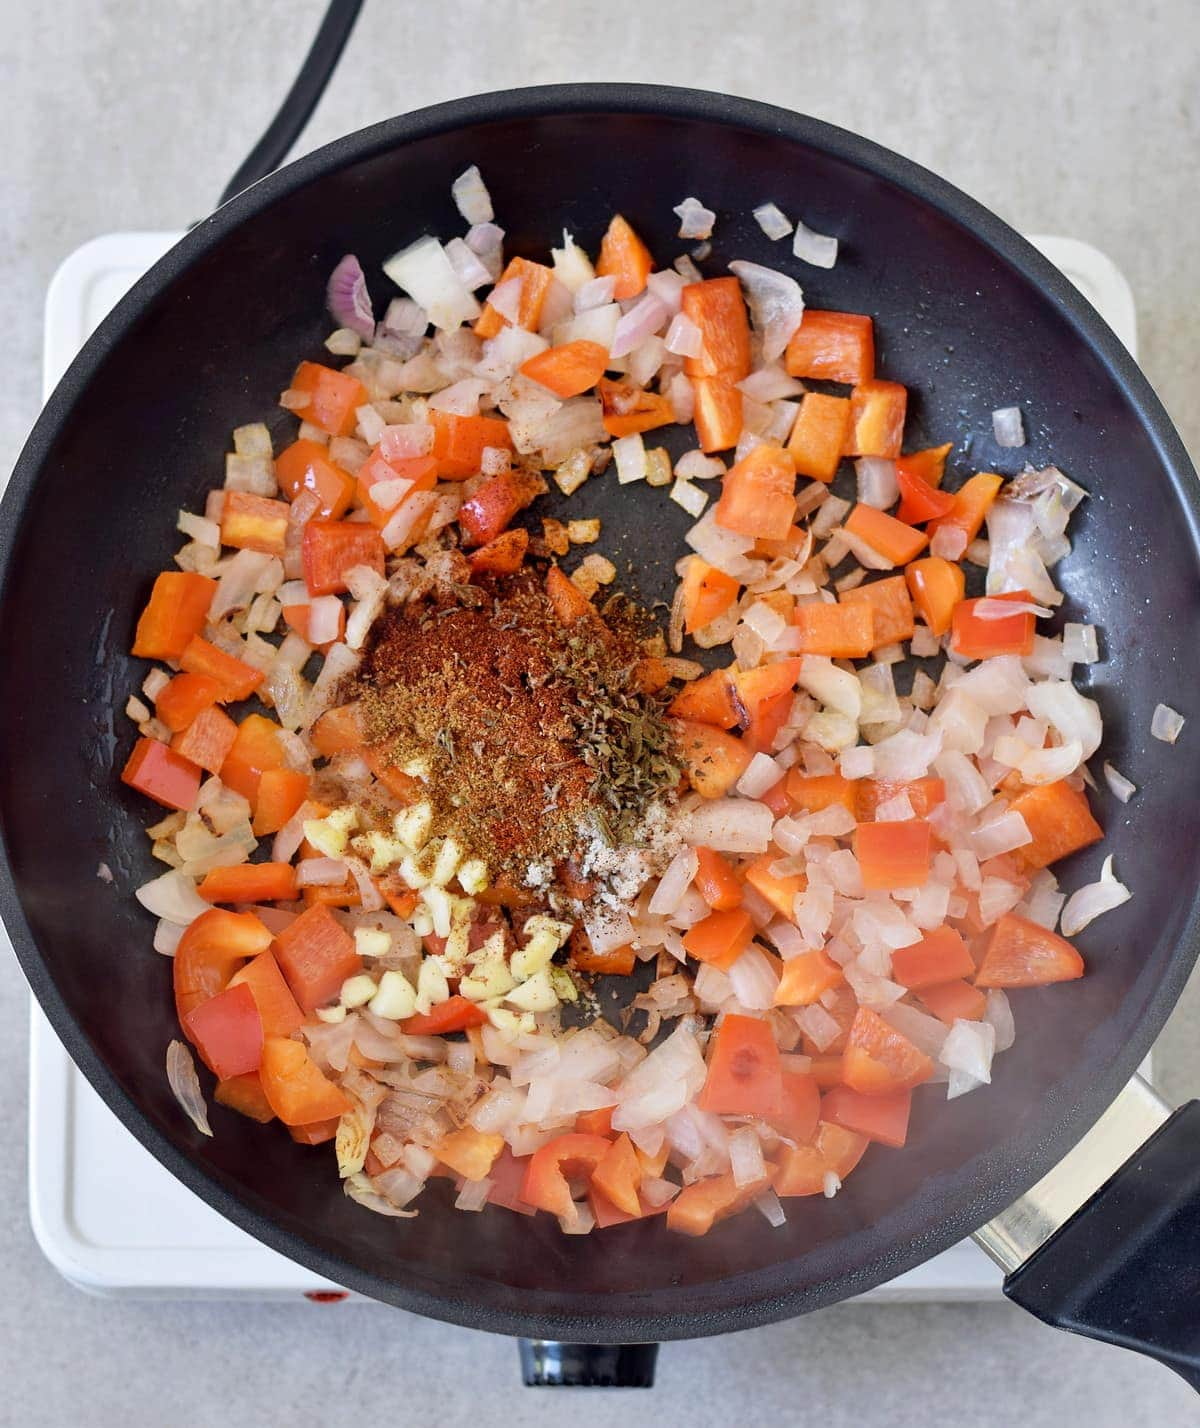 onion and red pepper with spices in a pan